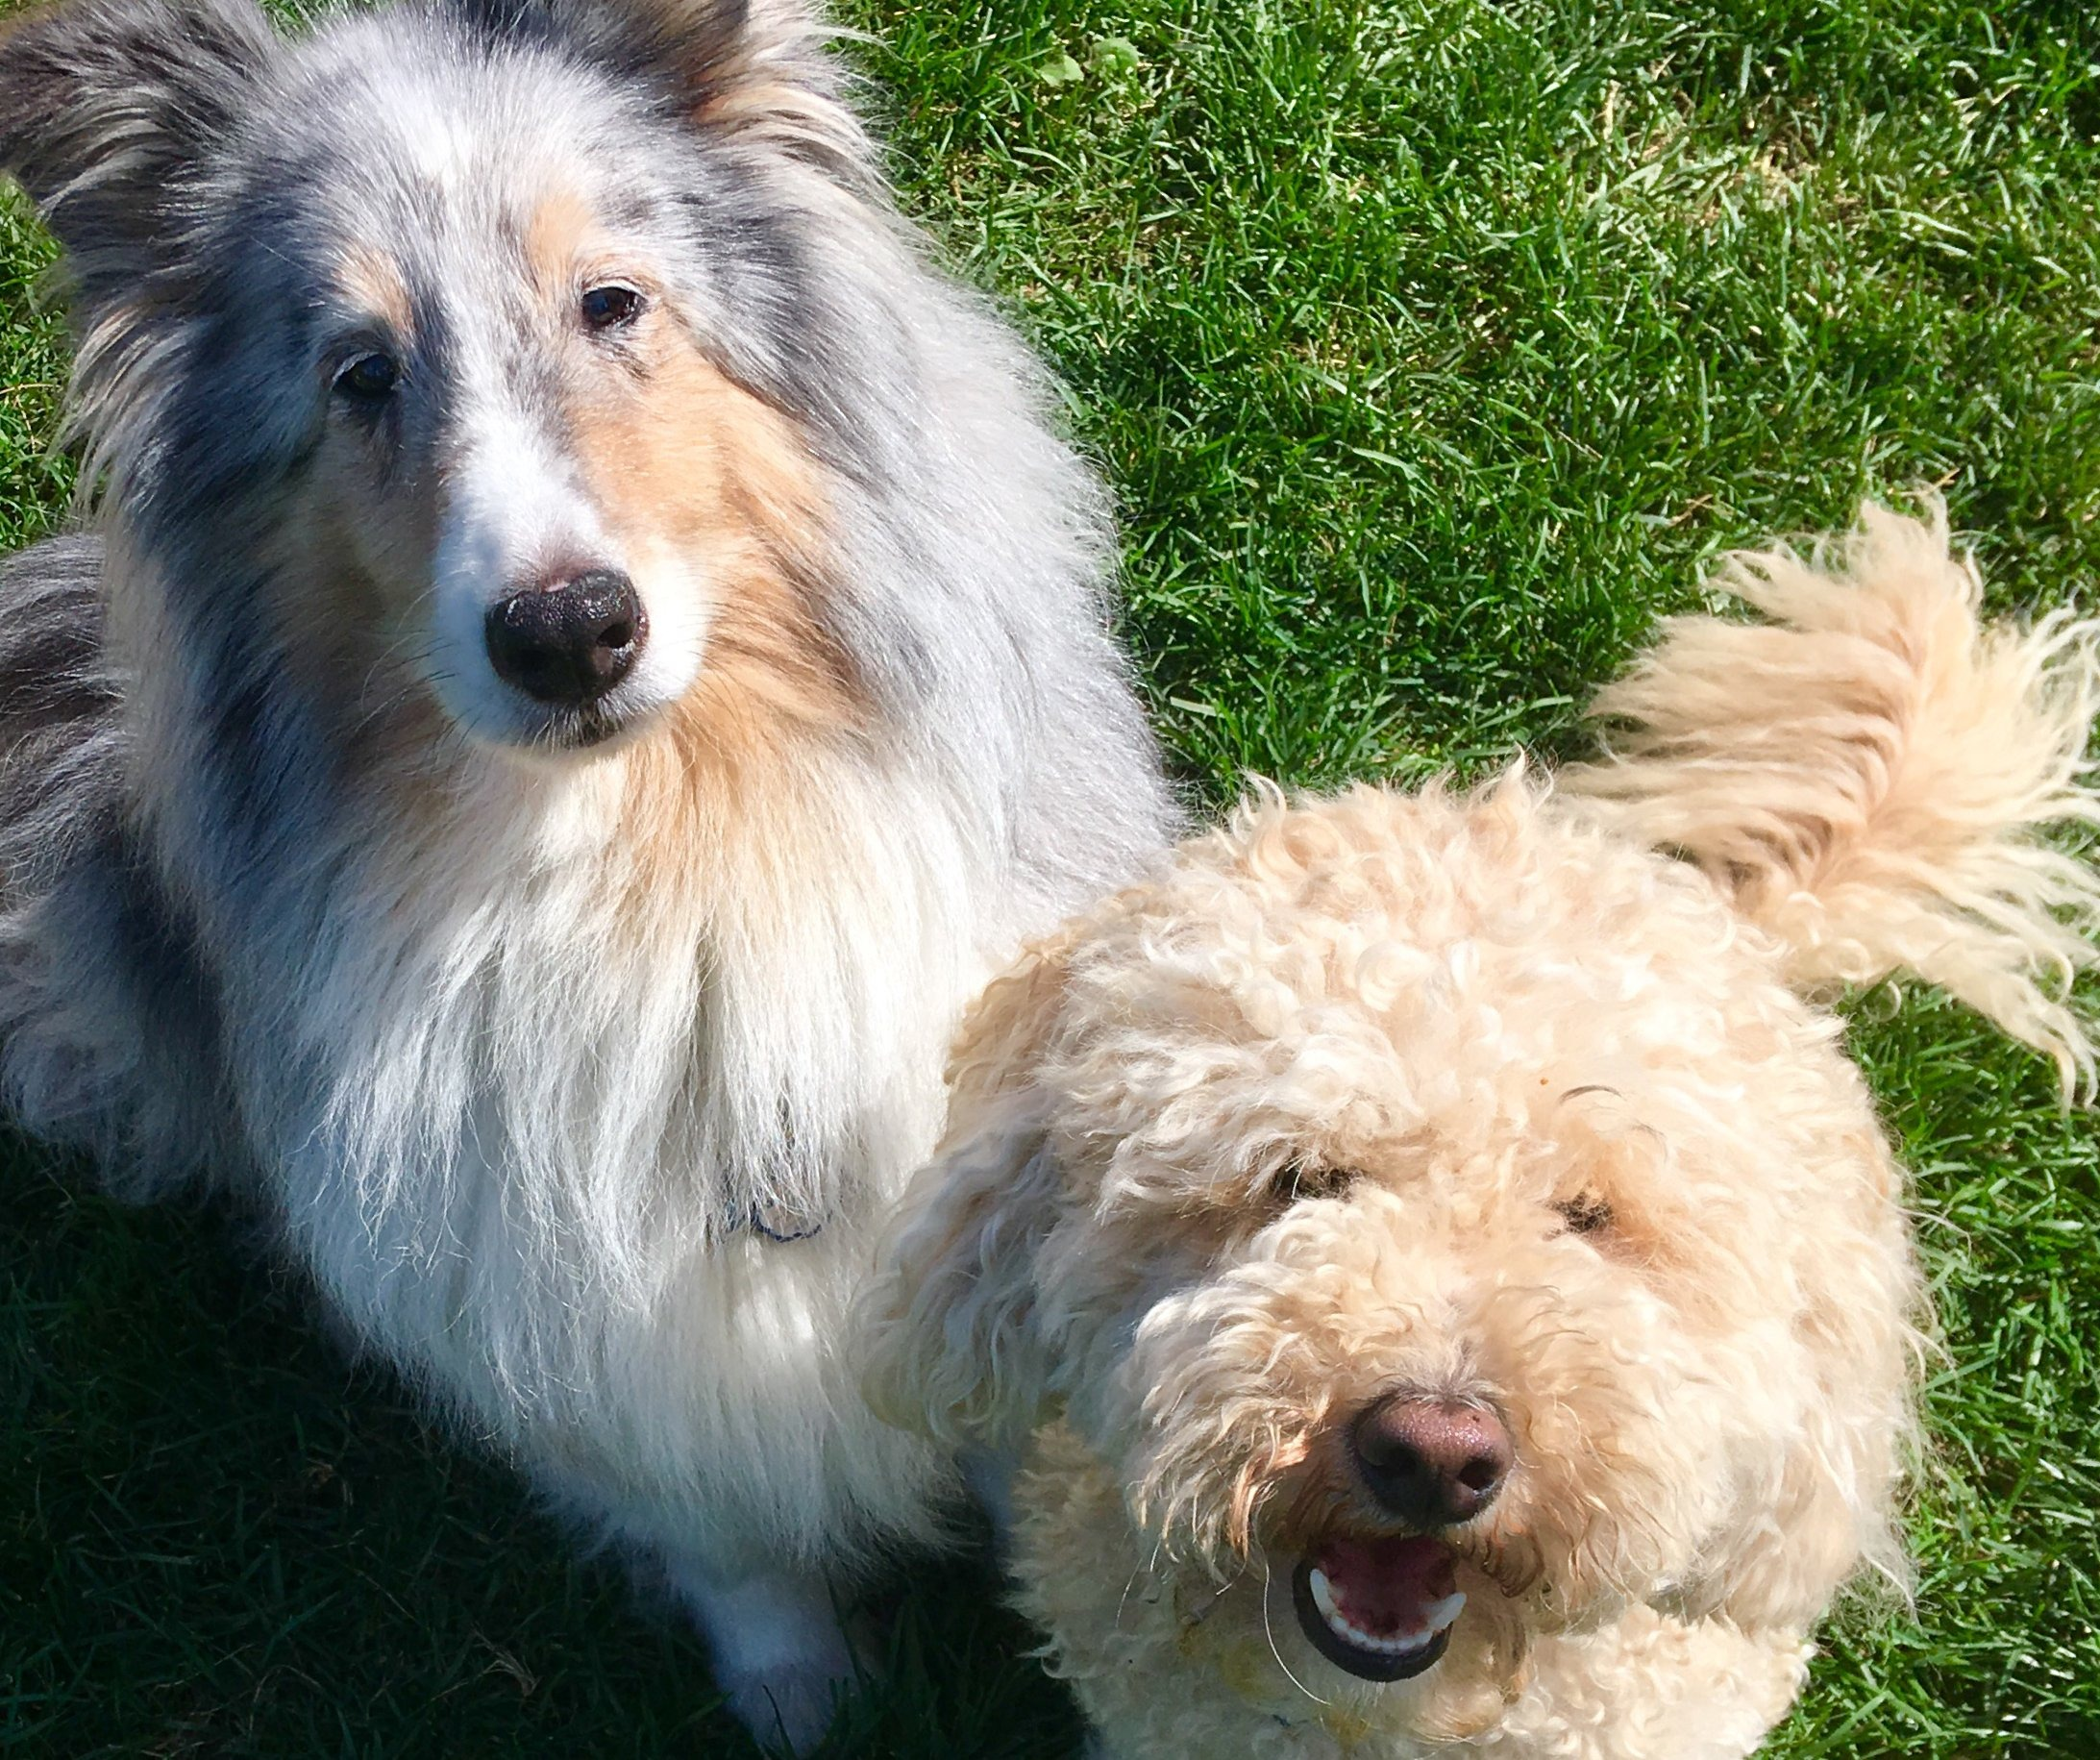 Two fluffy dogs, one with longer and one with shorter hair, look up at the camera from the grass.